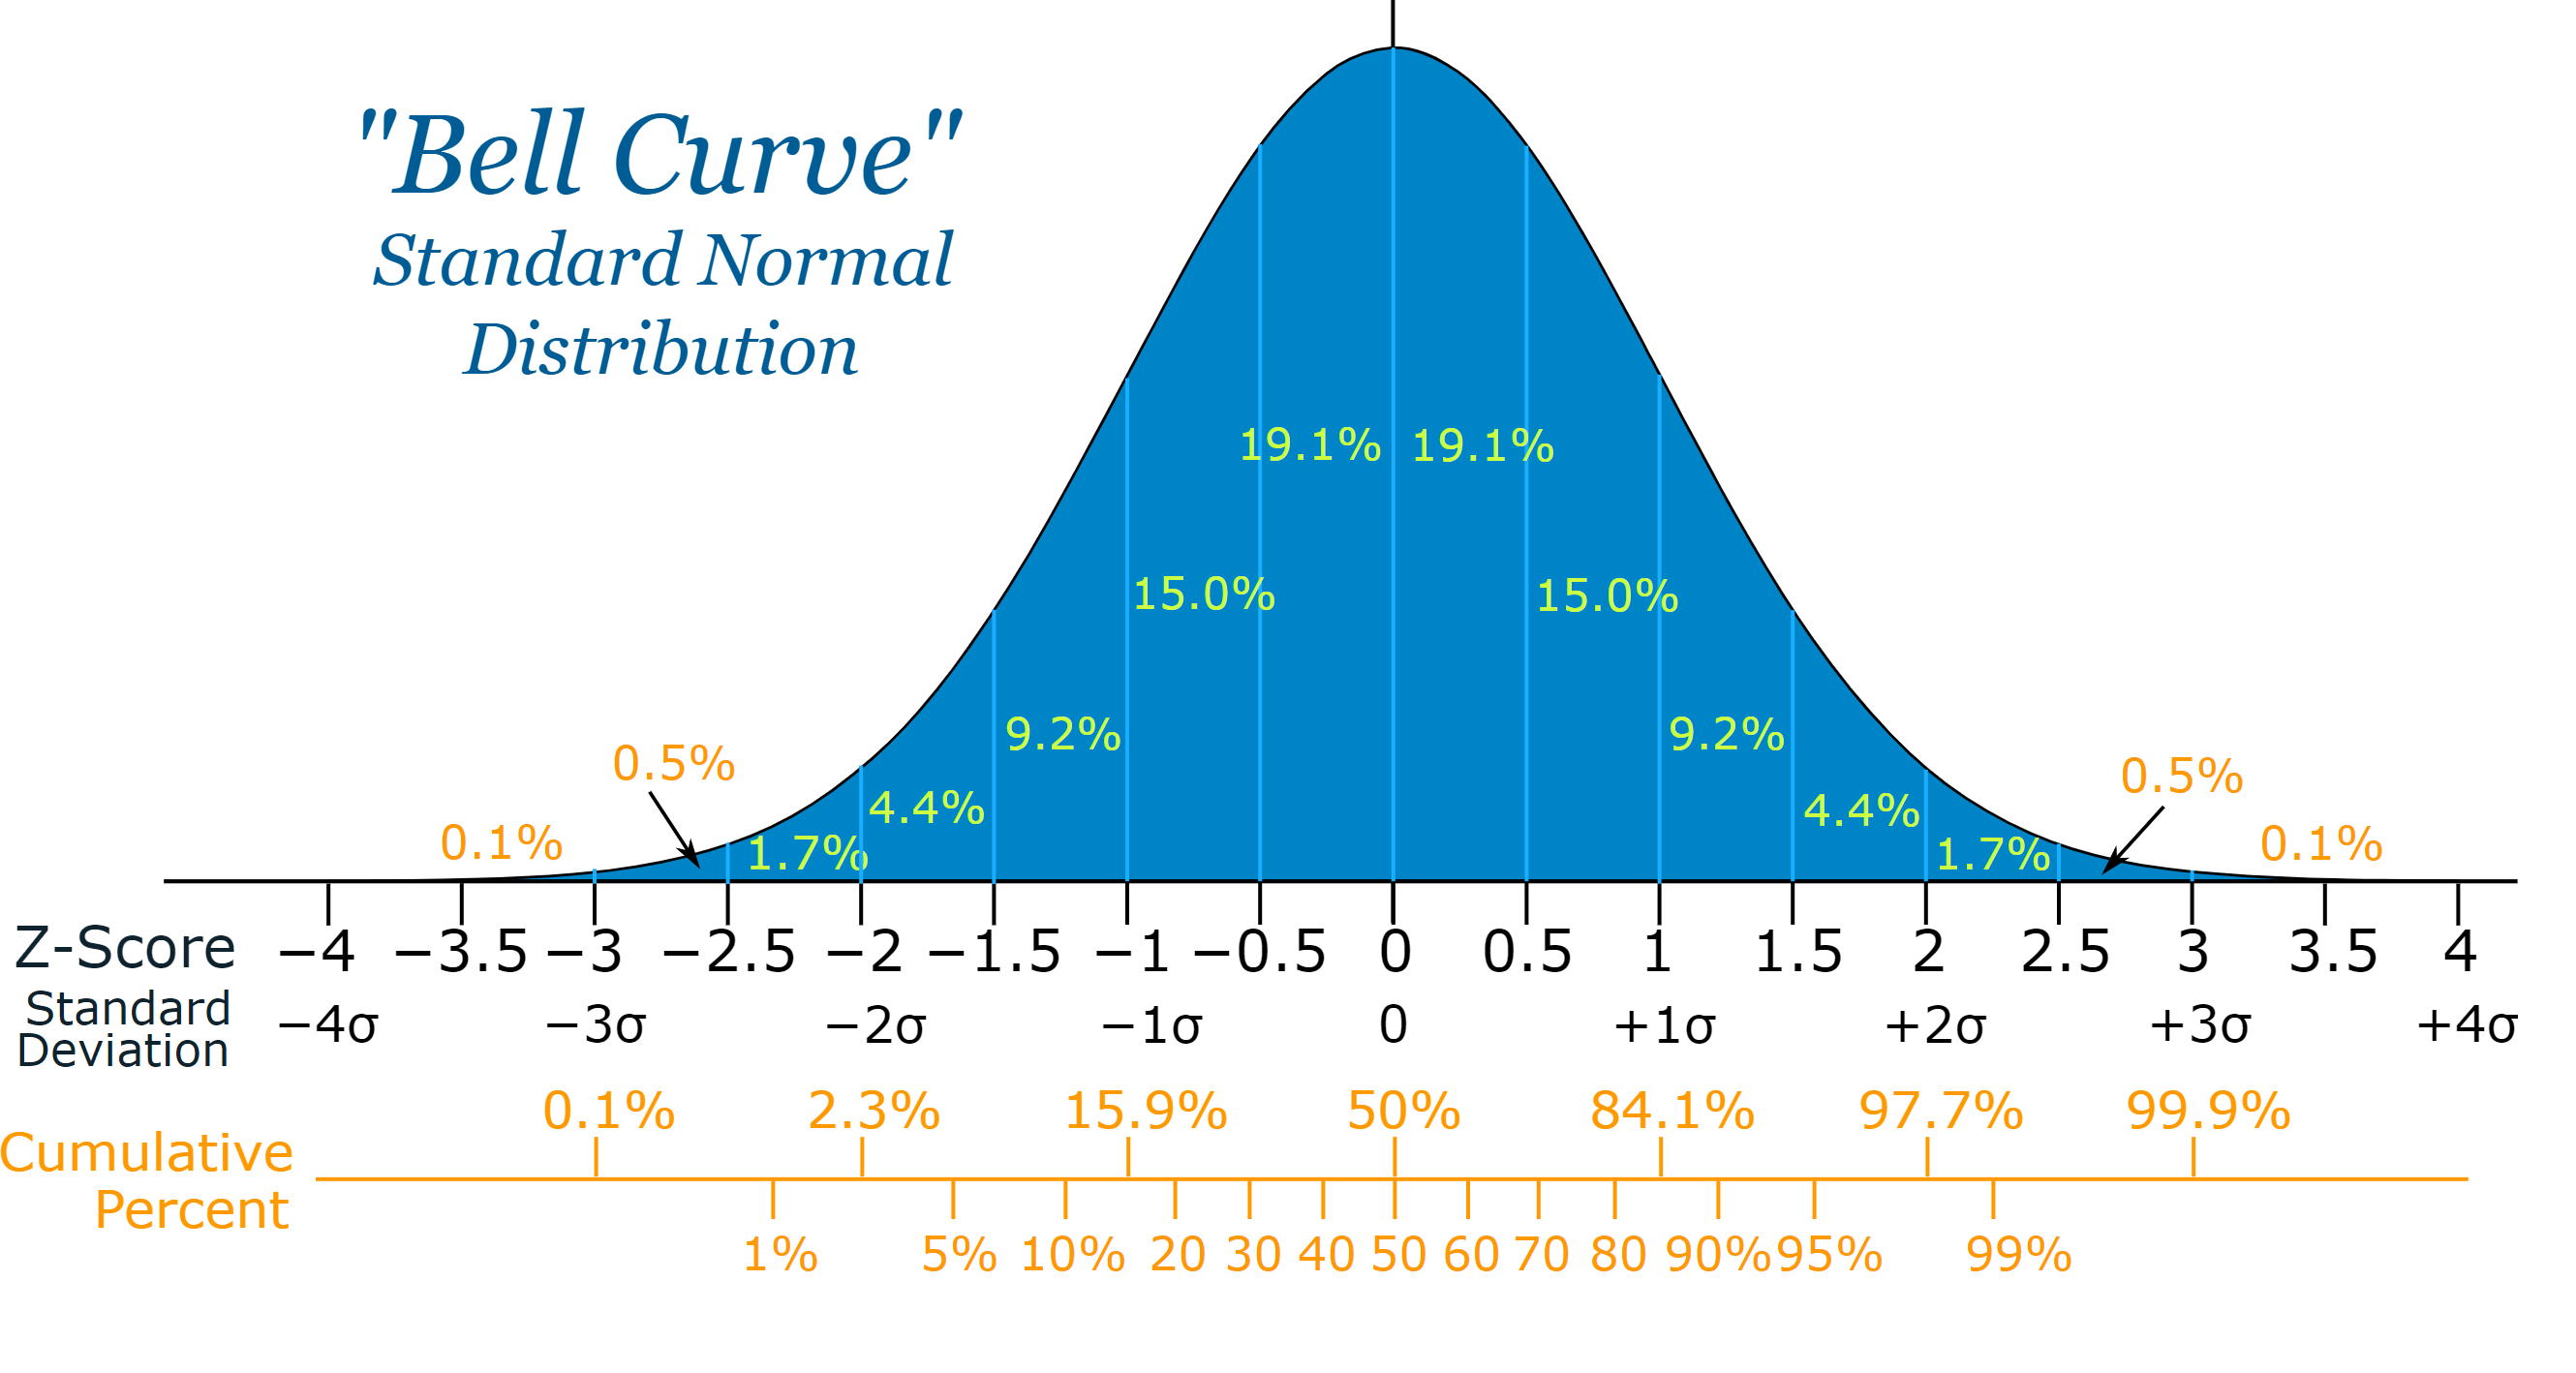 The Bitcoin Bell Curve